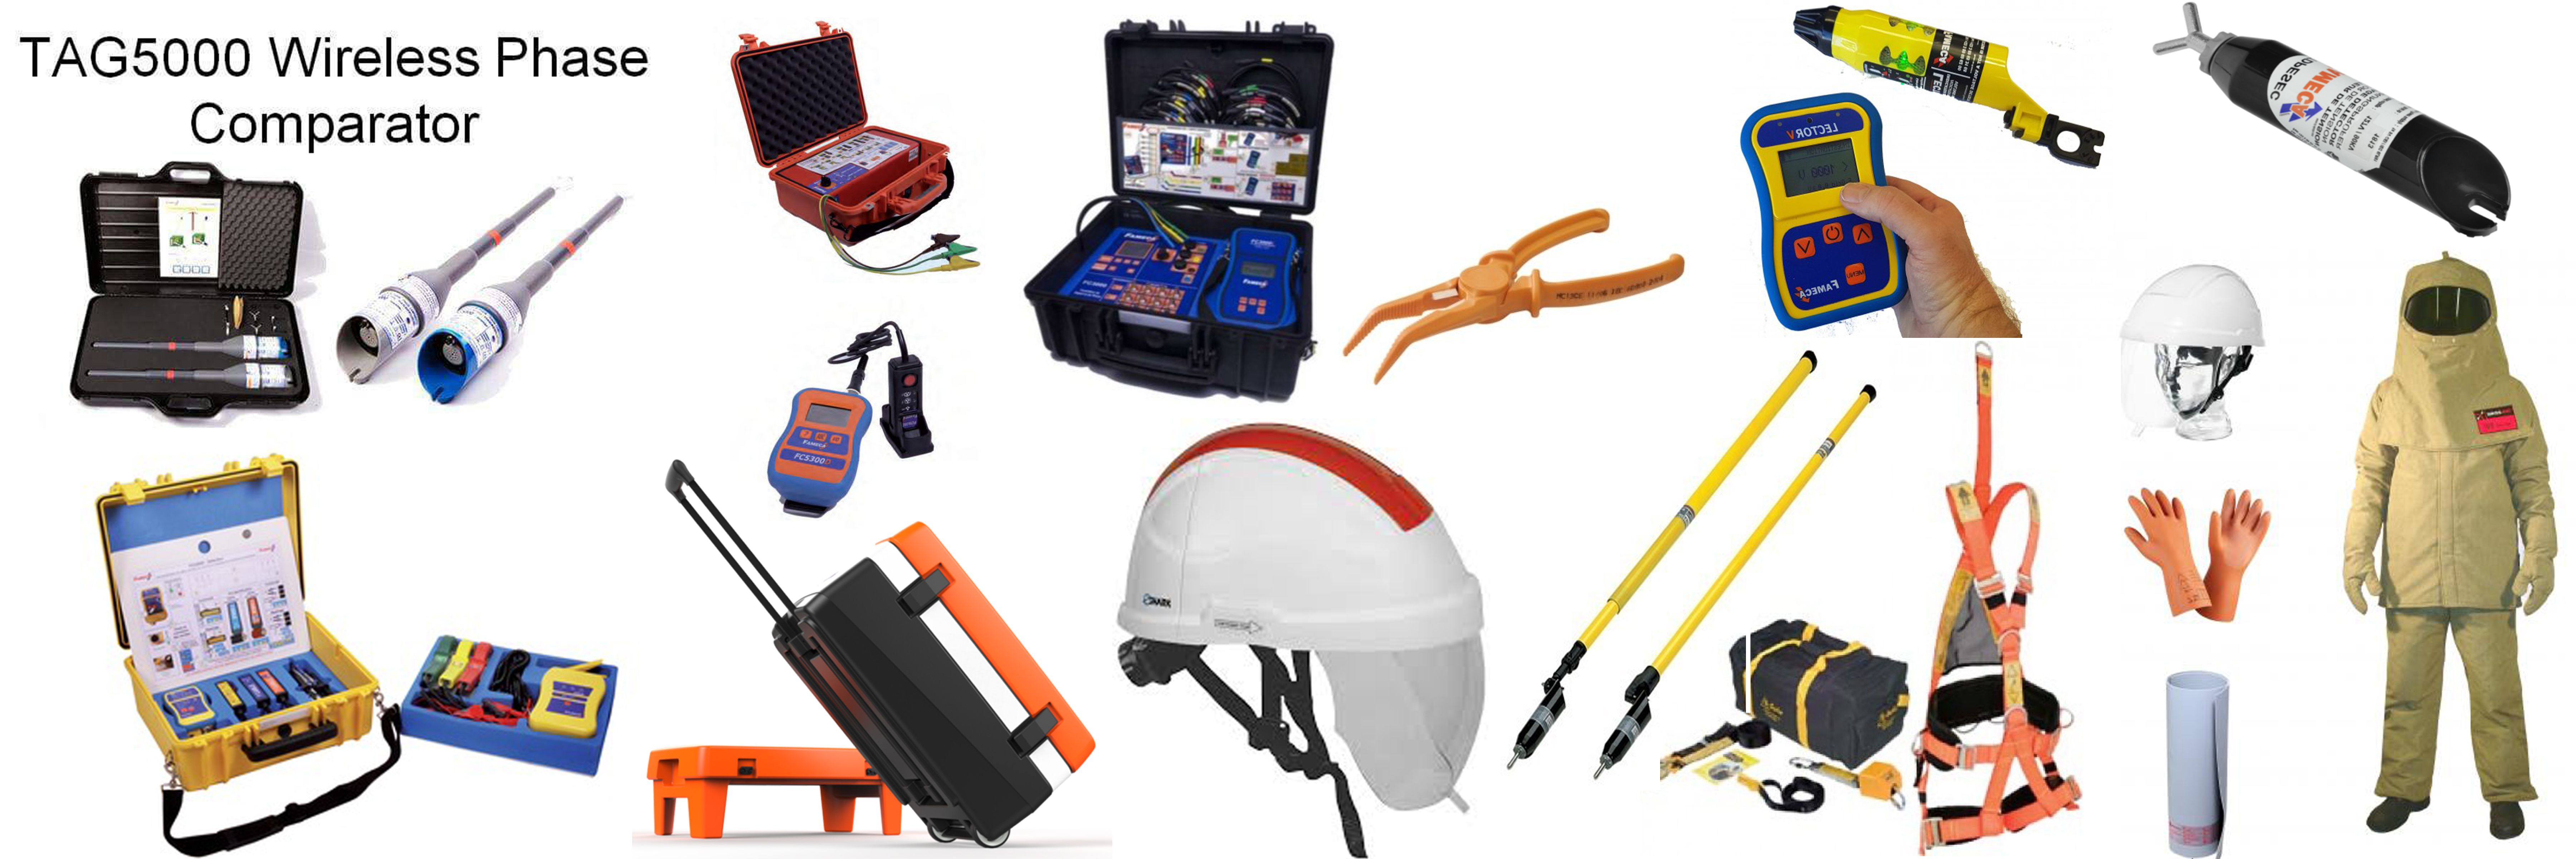 All Electrical Safety products